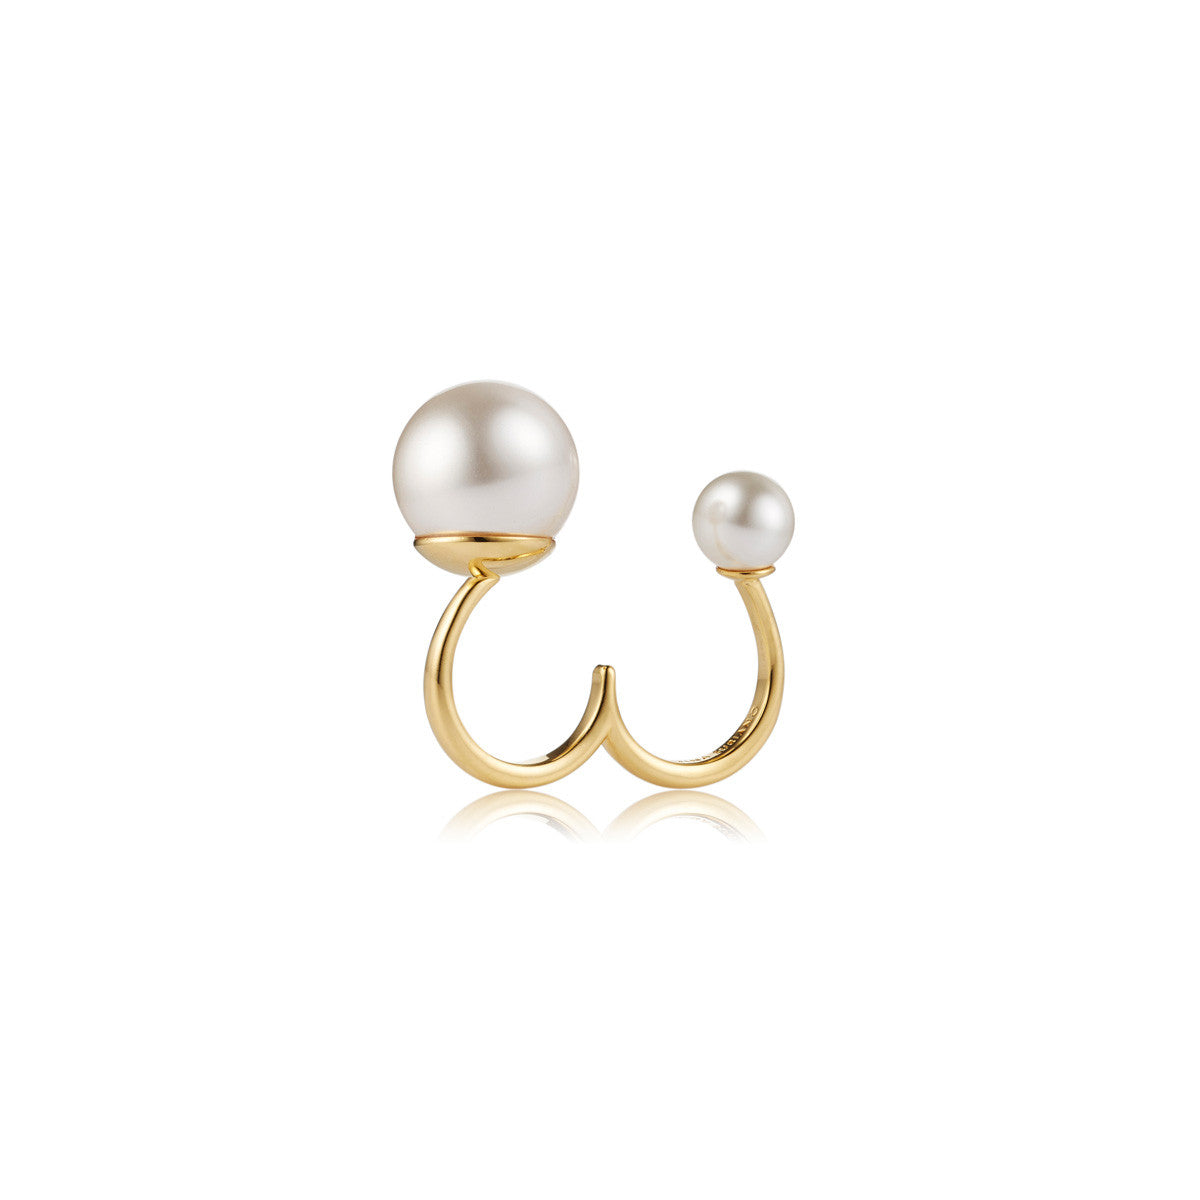 Solid brass, 18K gold plated Sagittarius Astris ring features a pair of Swarovski® pearls - bold, beautiful and feminine - front